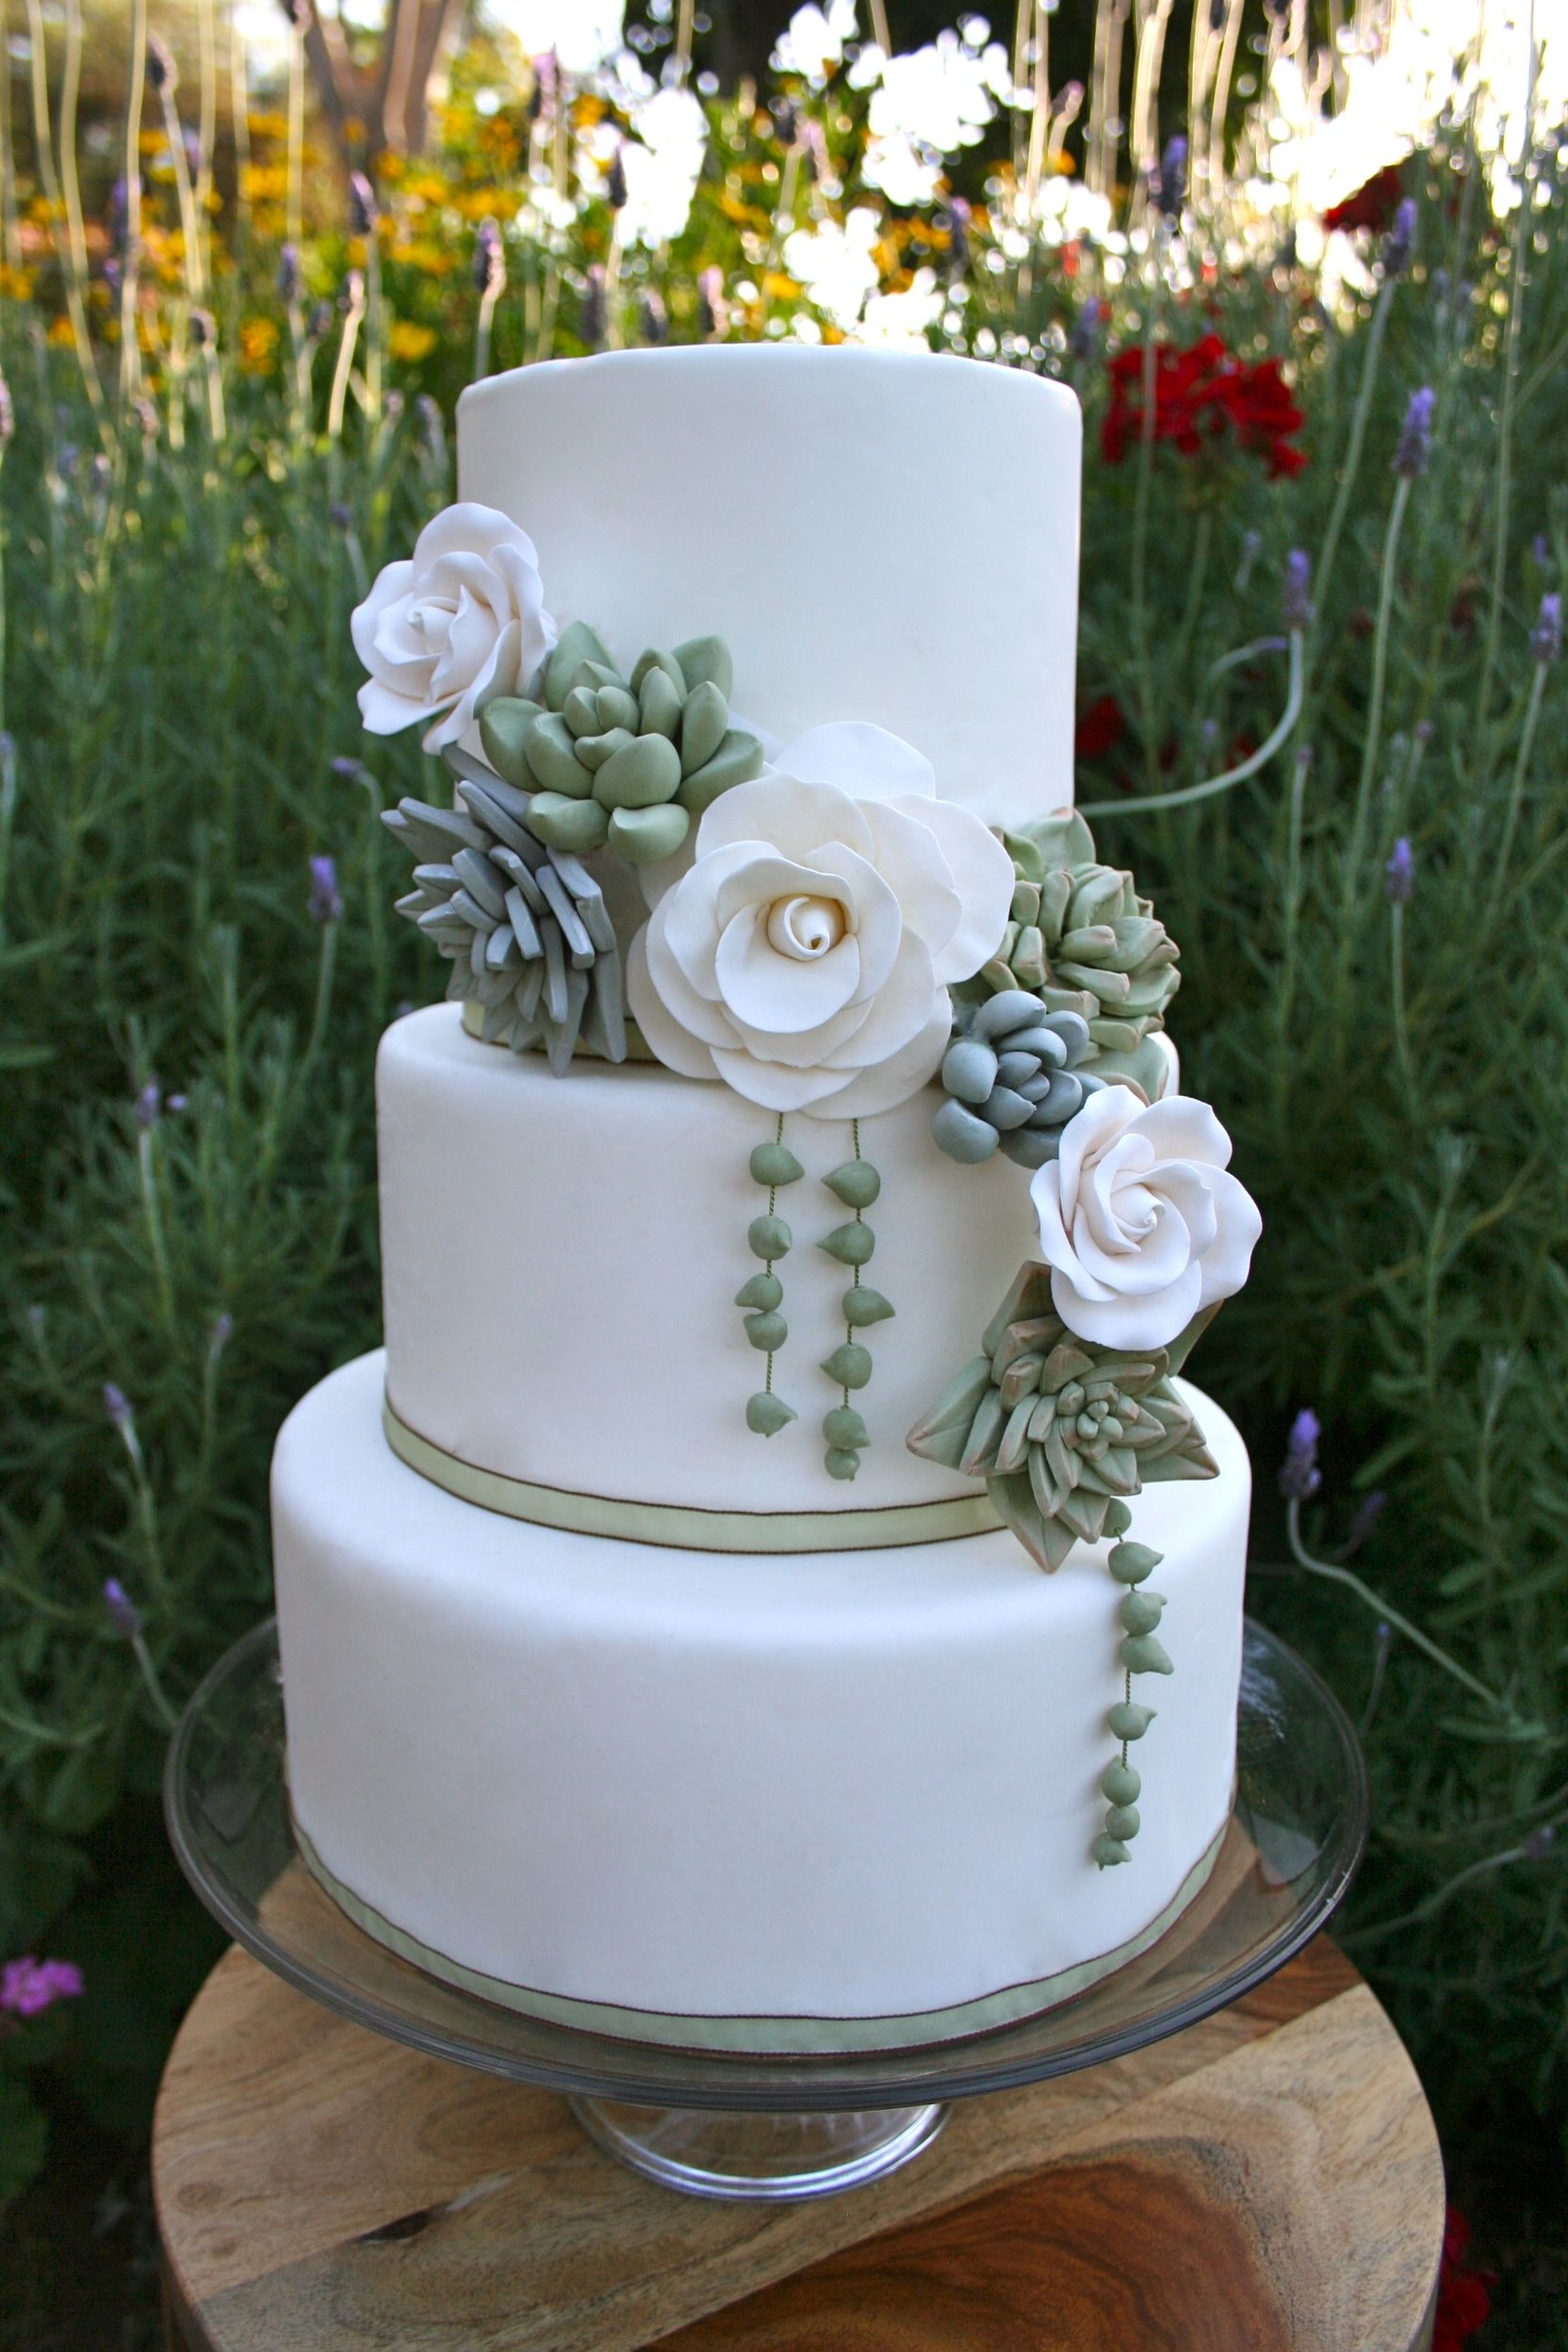 Pin By Barbara Sorenson On Wedding Cakes Succulent Wedding Cakes Wedding Cake Toppers Floral Wedding Cakes